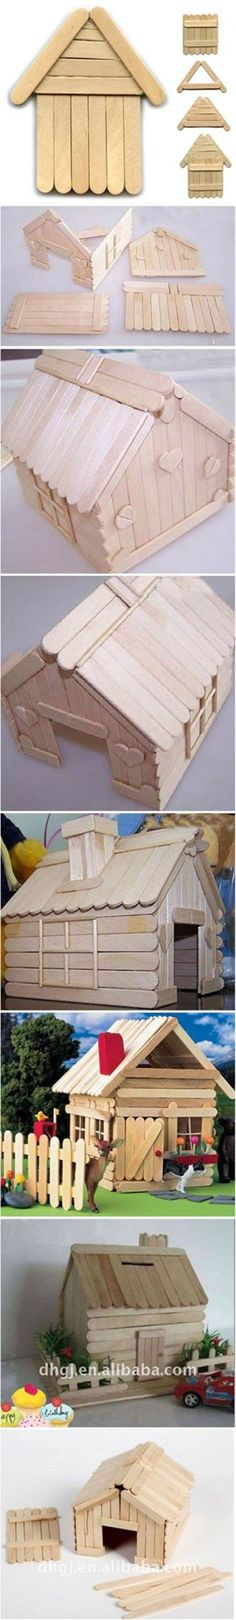 How to DIY Popsicle Stick House